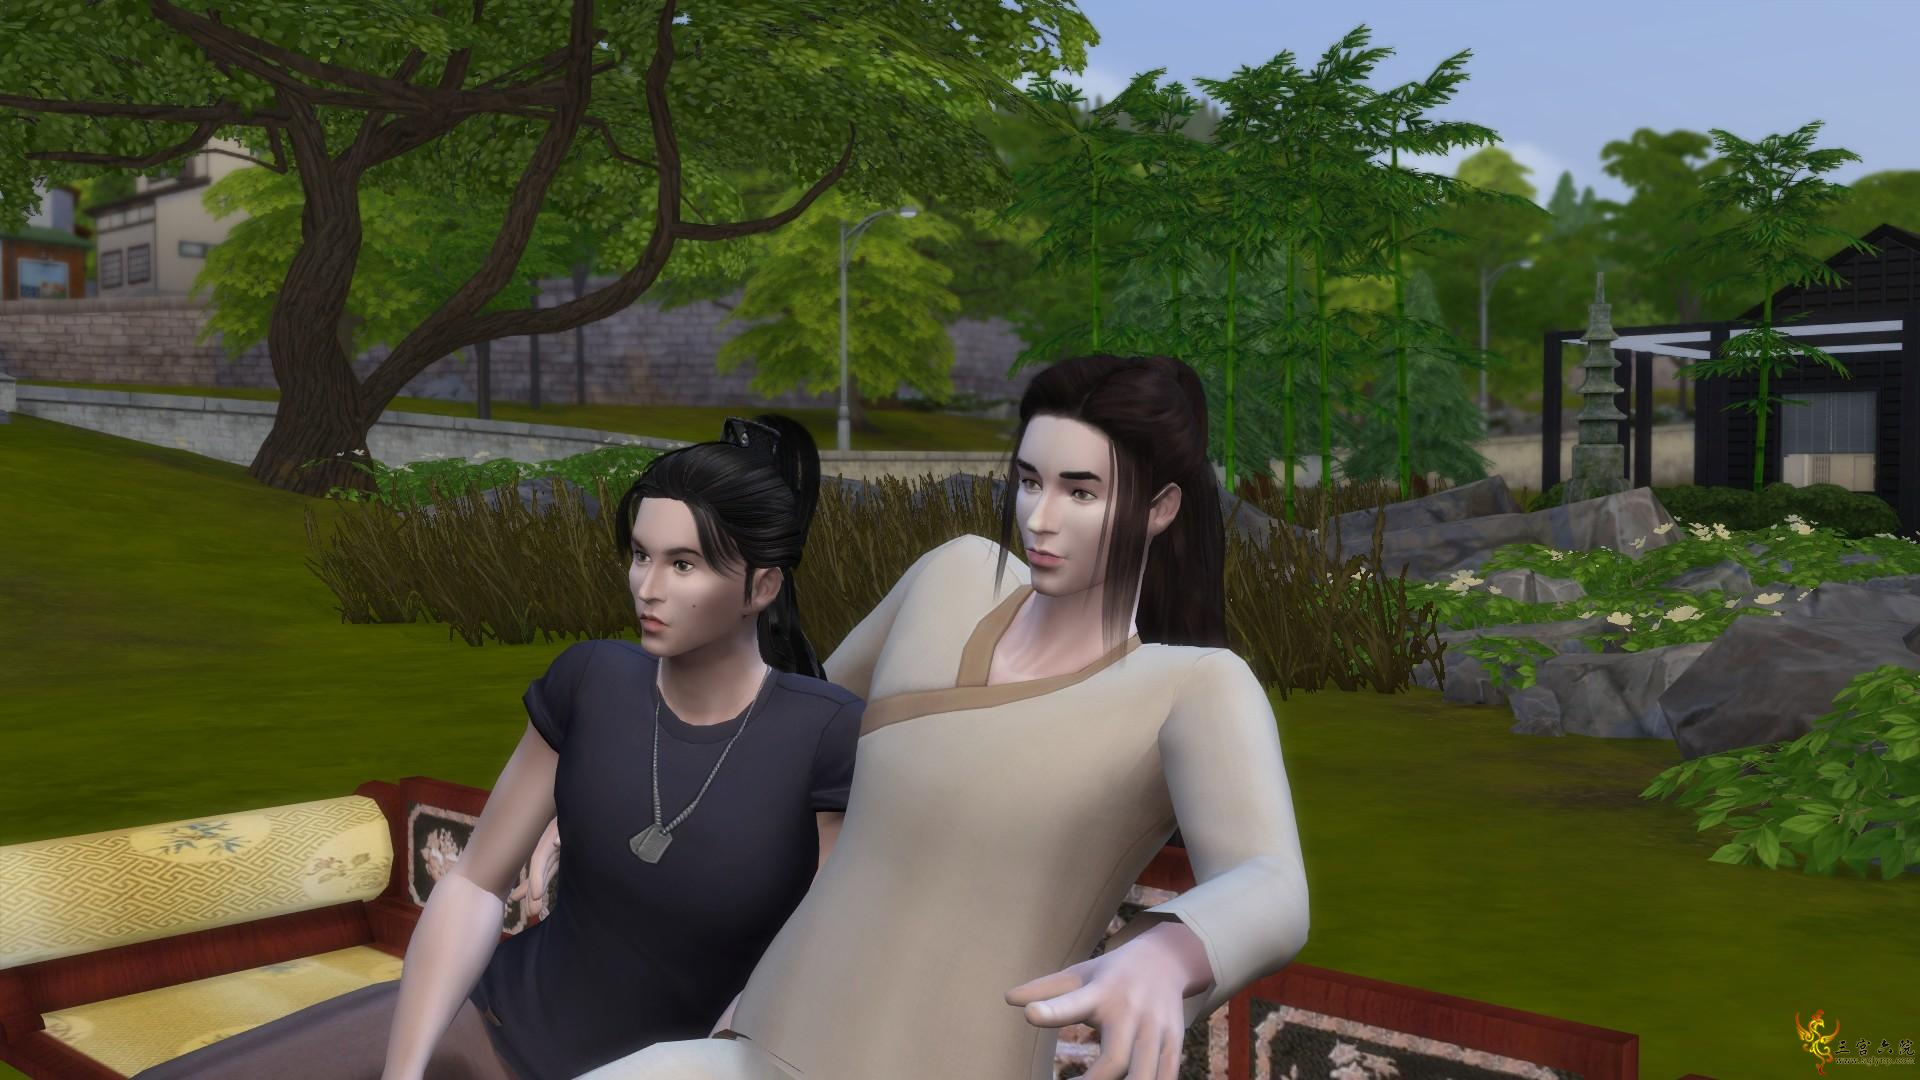 The Sims 4 2021_7_4 21_37_02.png